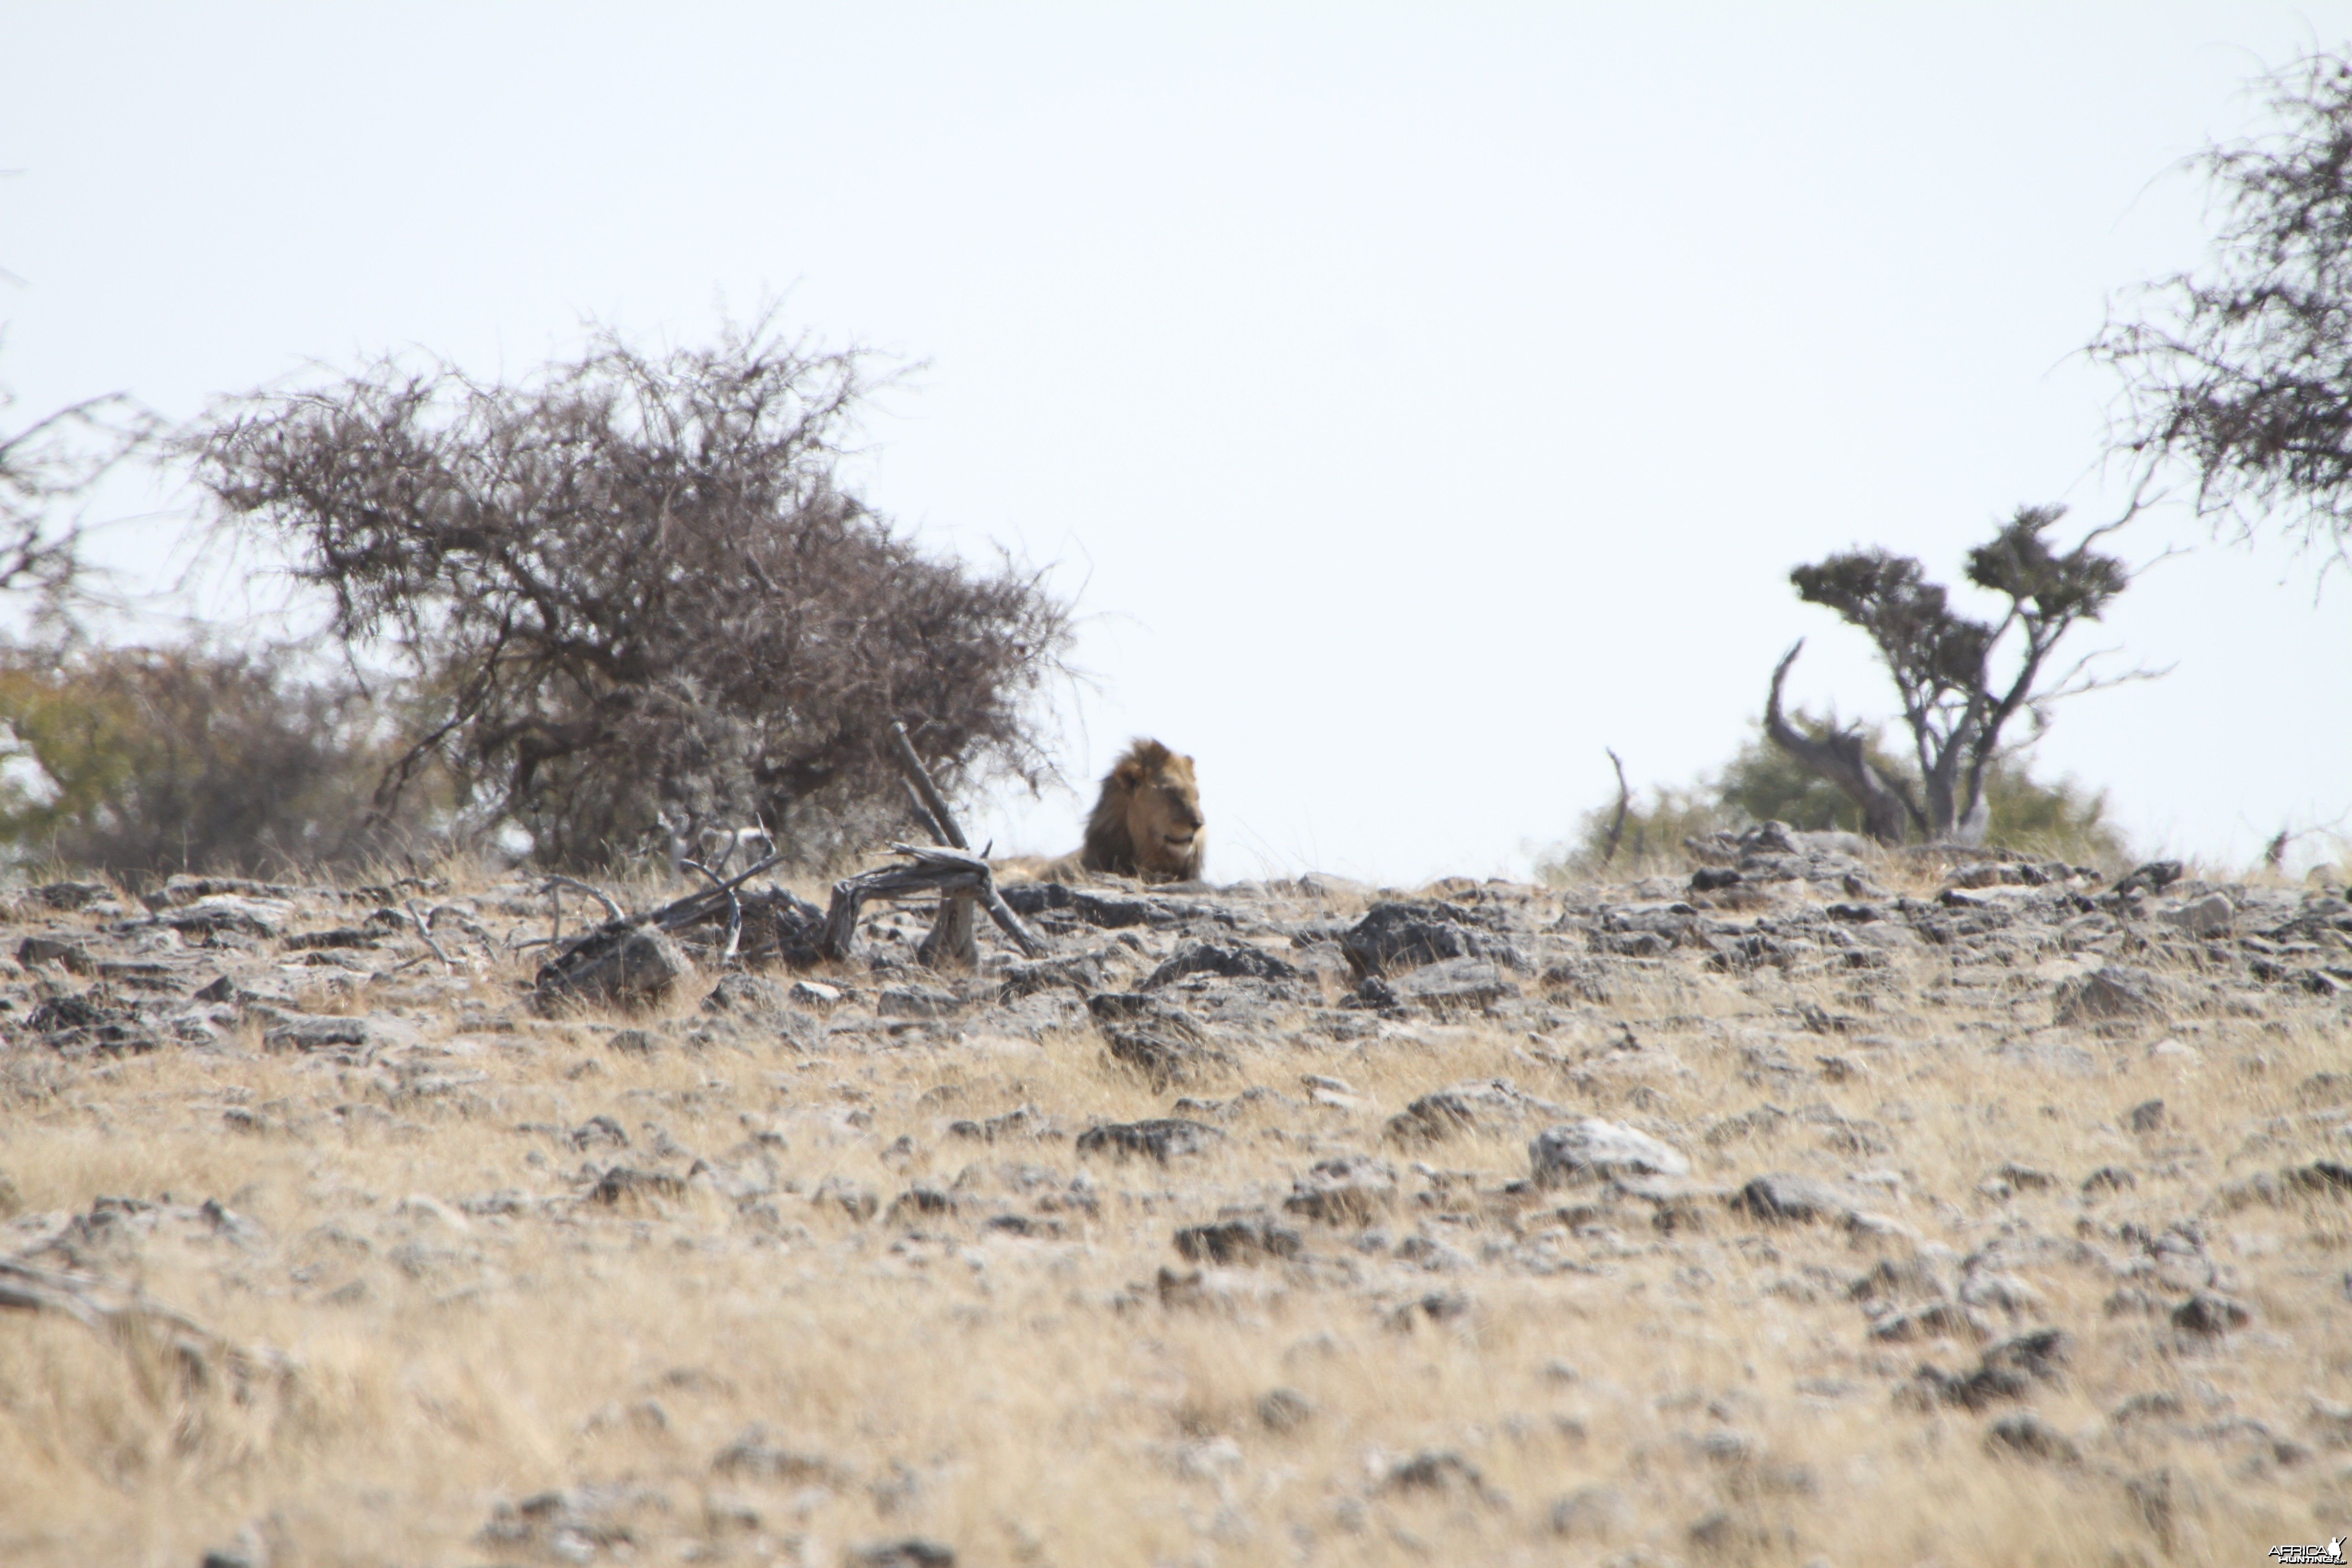 Lion at Elephant at Etosha National Park